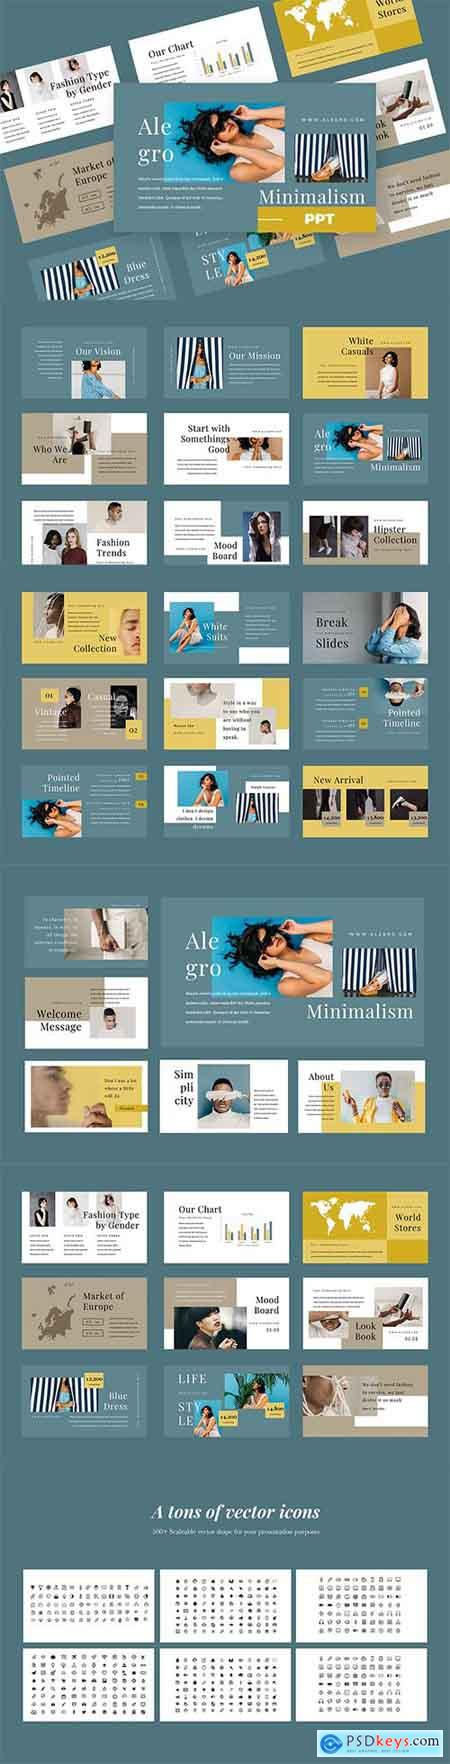 Alegro - Fashion Powerpoint, Keynote and Google Slides Templates